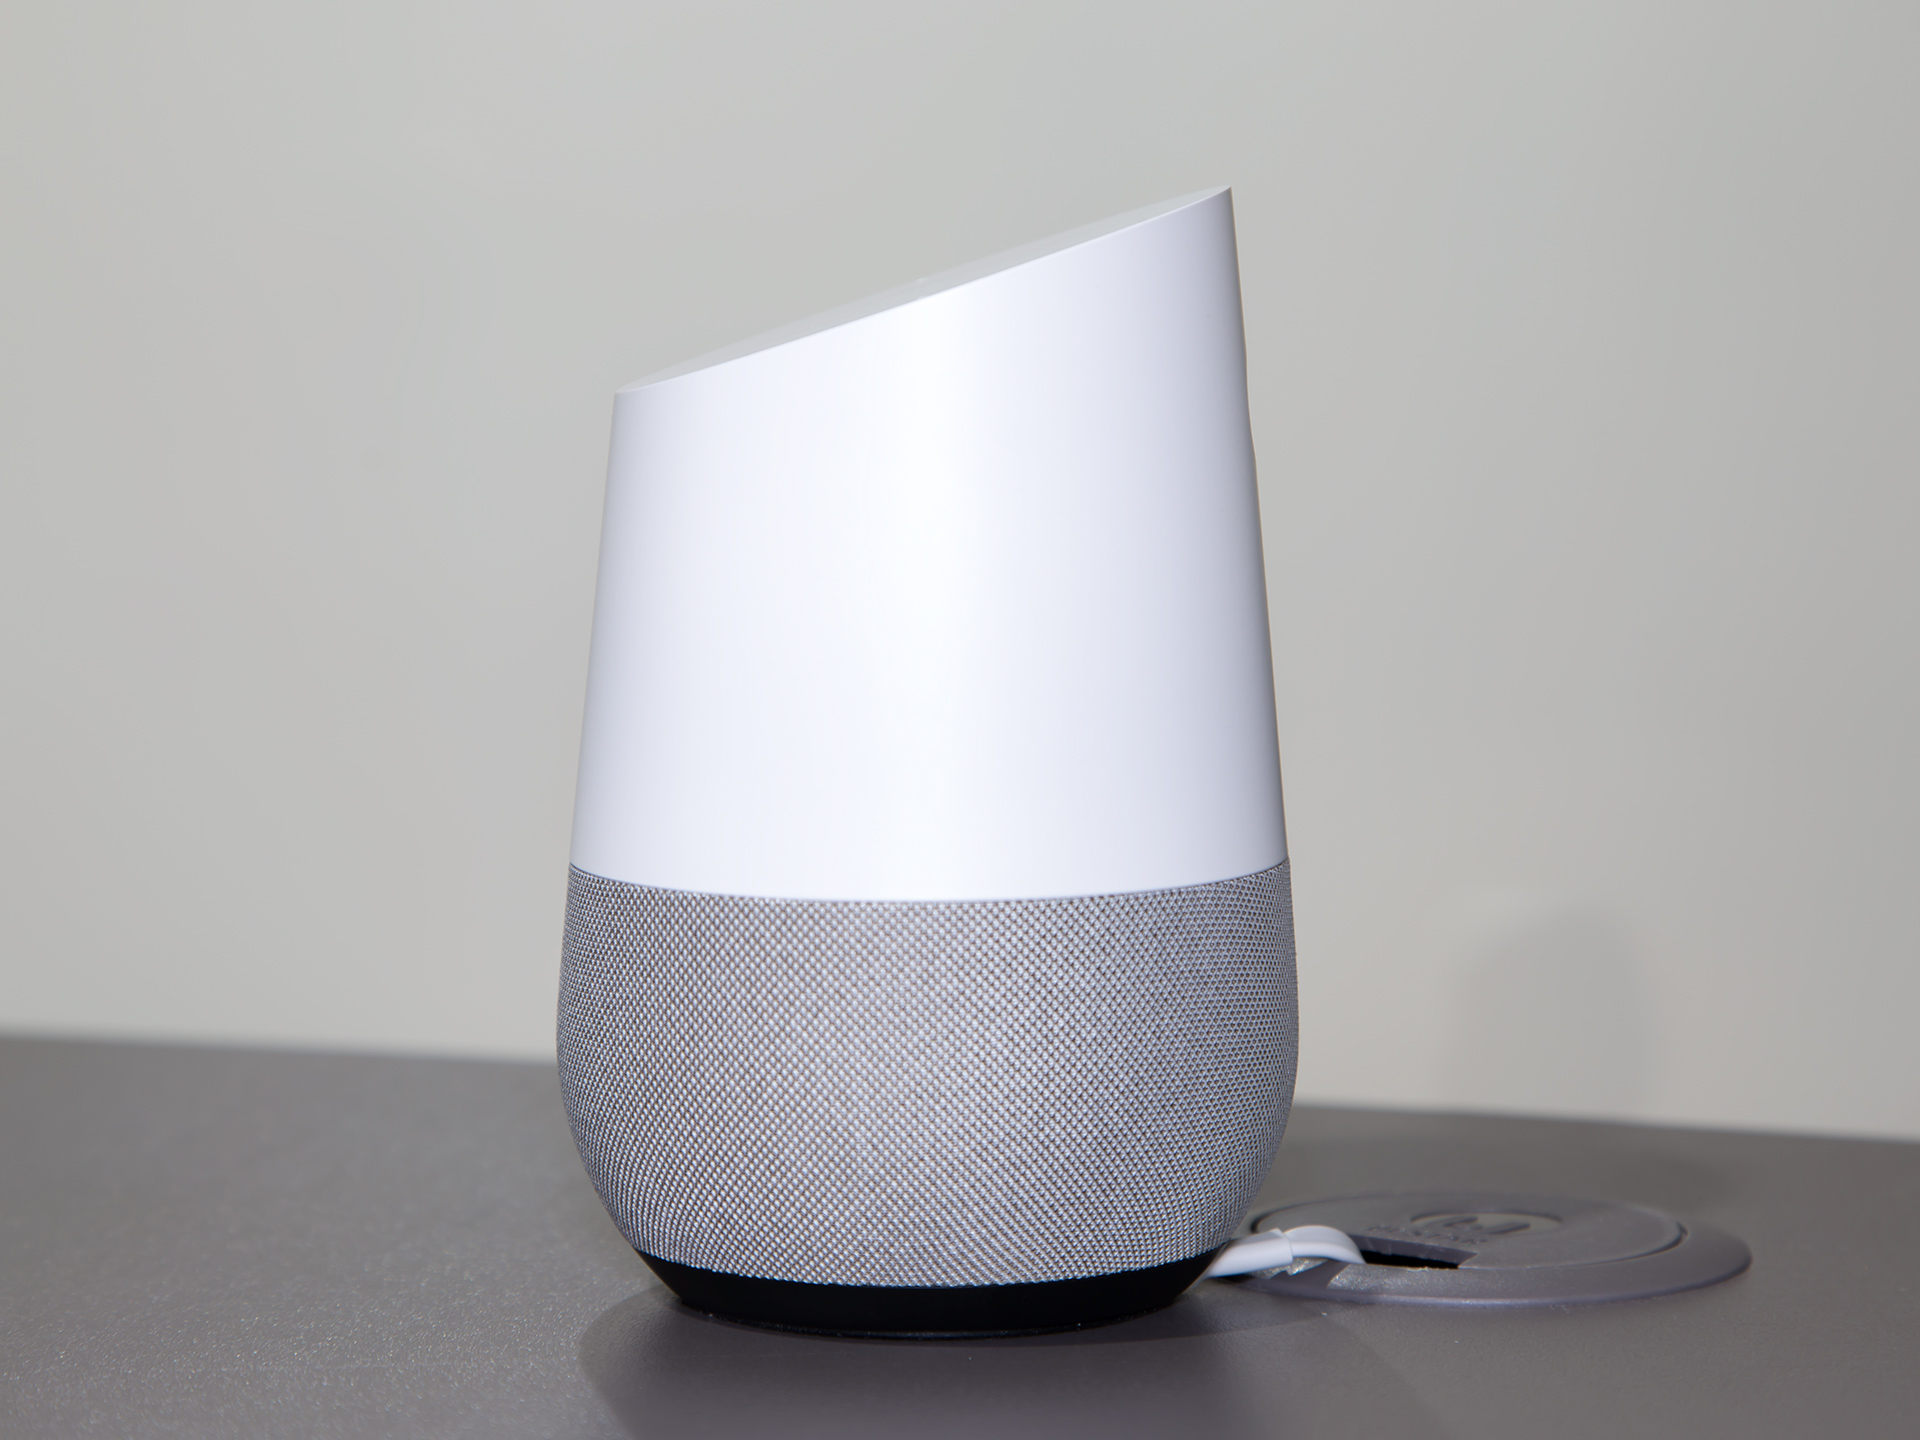 The Google Assistant SDK will let you run the Assistant on